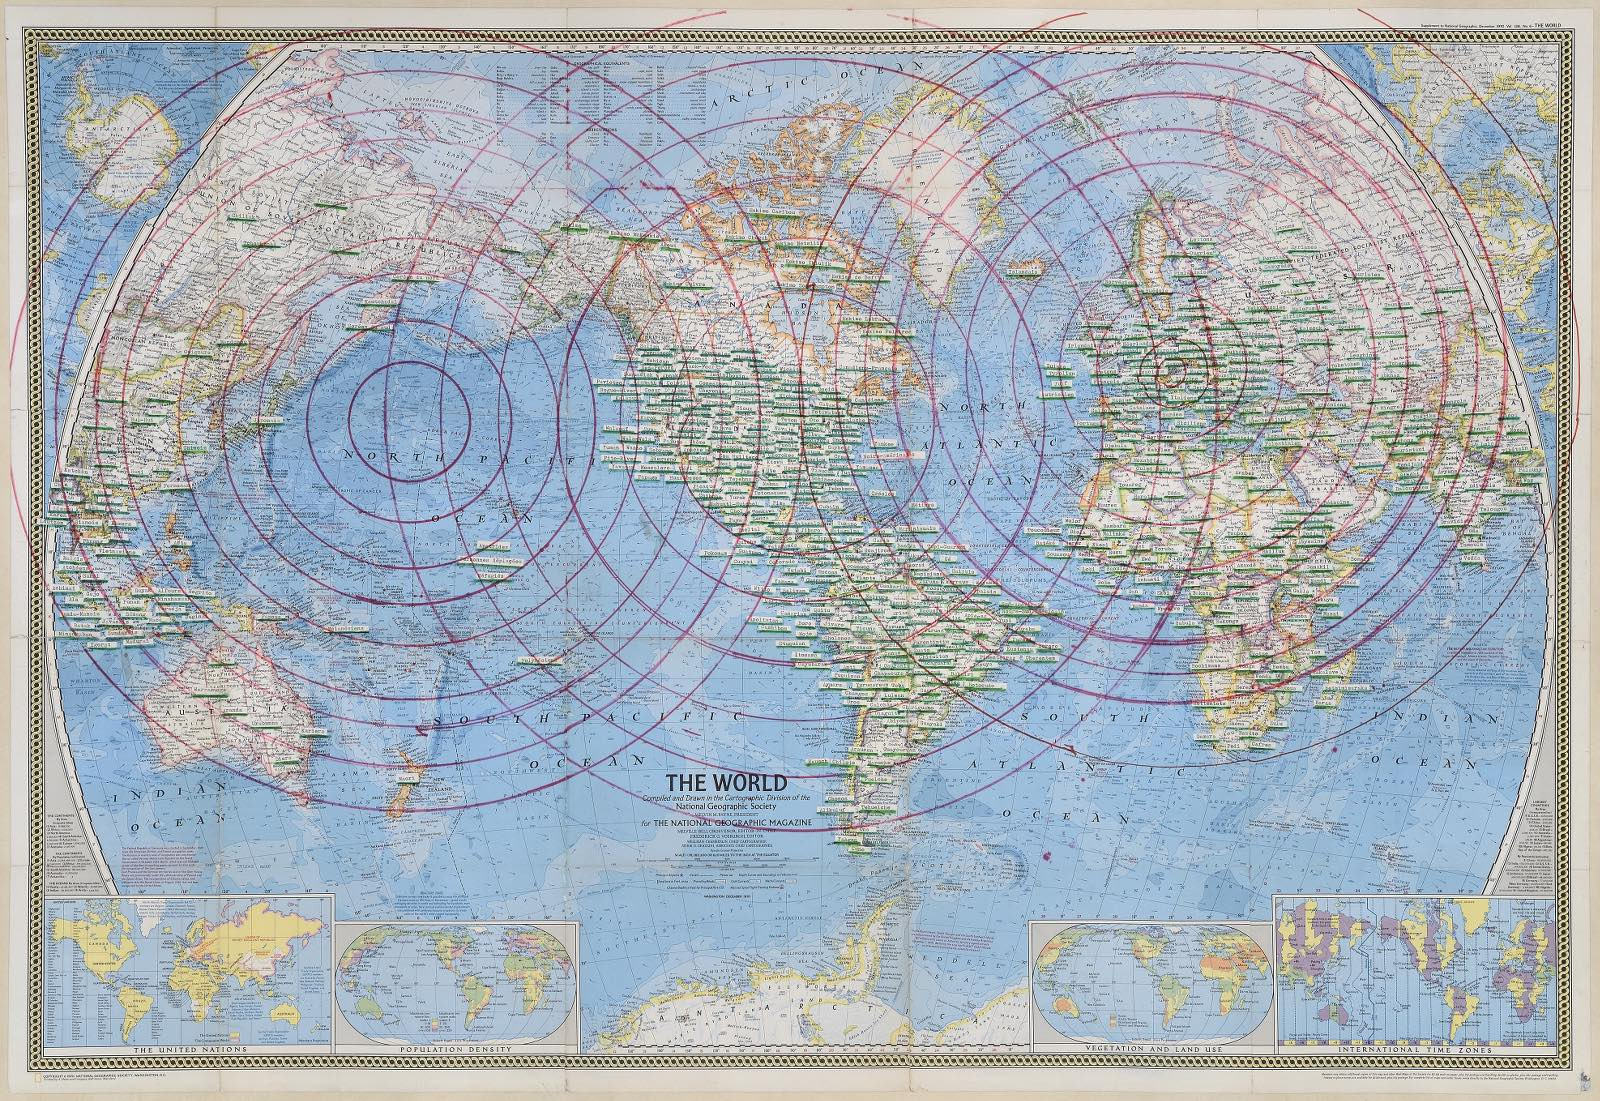 Bernard Heidsieck, Vaduz, feutre et collage de bandes de tapuscrits sur papier imprimé, 74 x 108 cm., 1974, collection M.N.A.M., Paris.